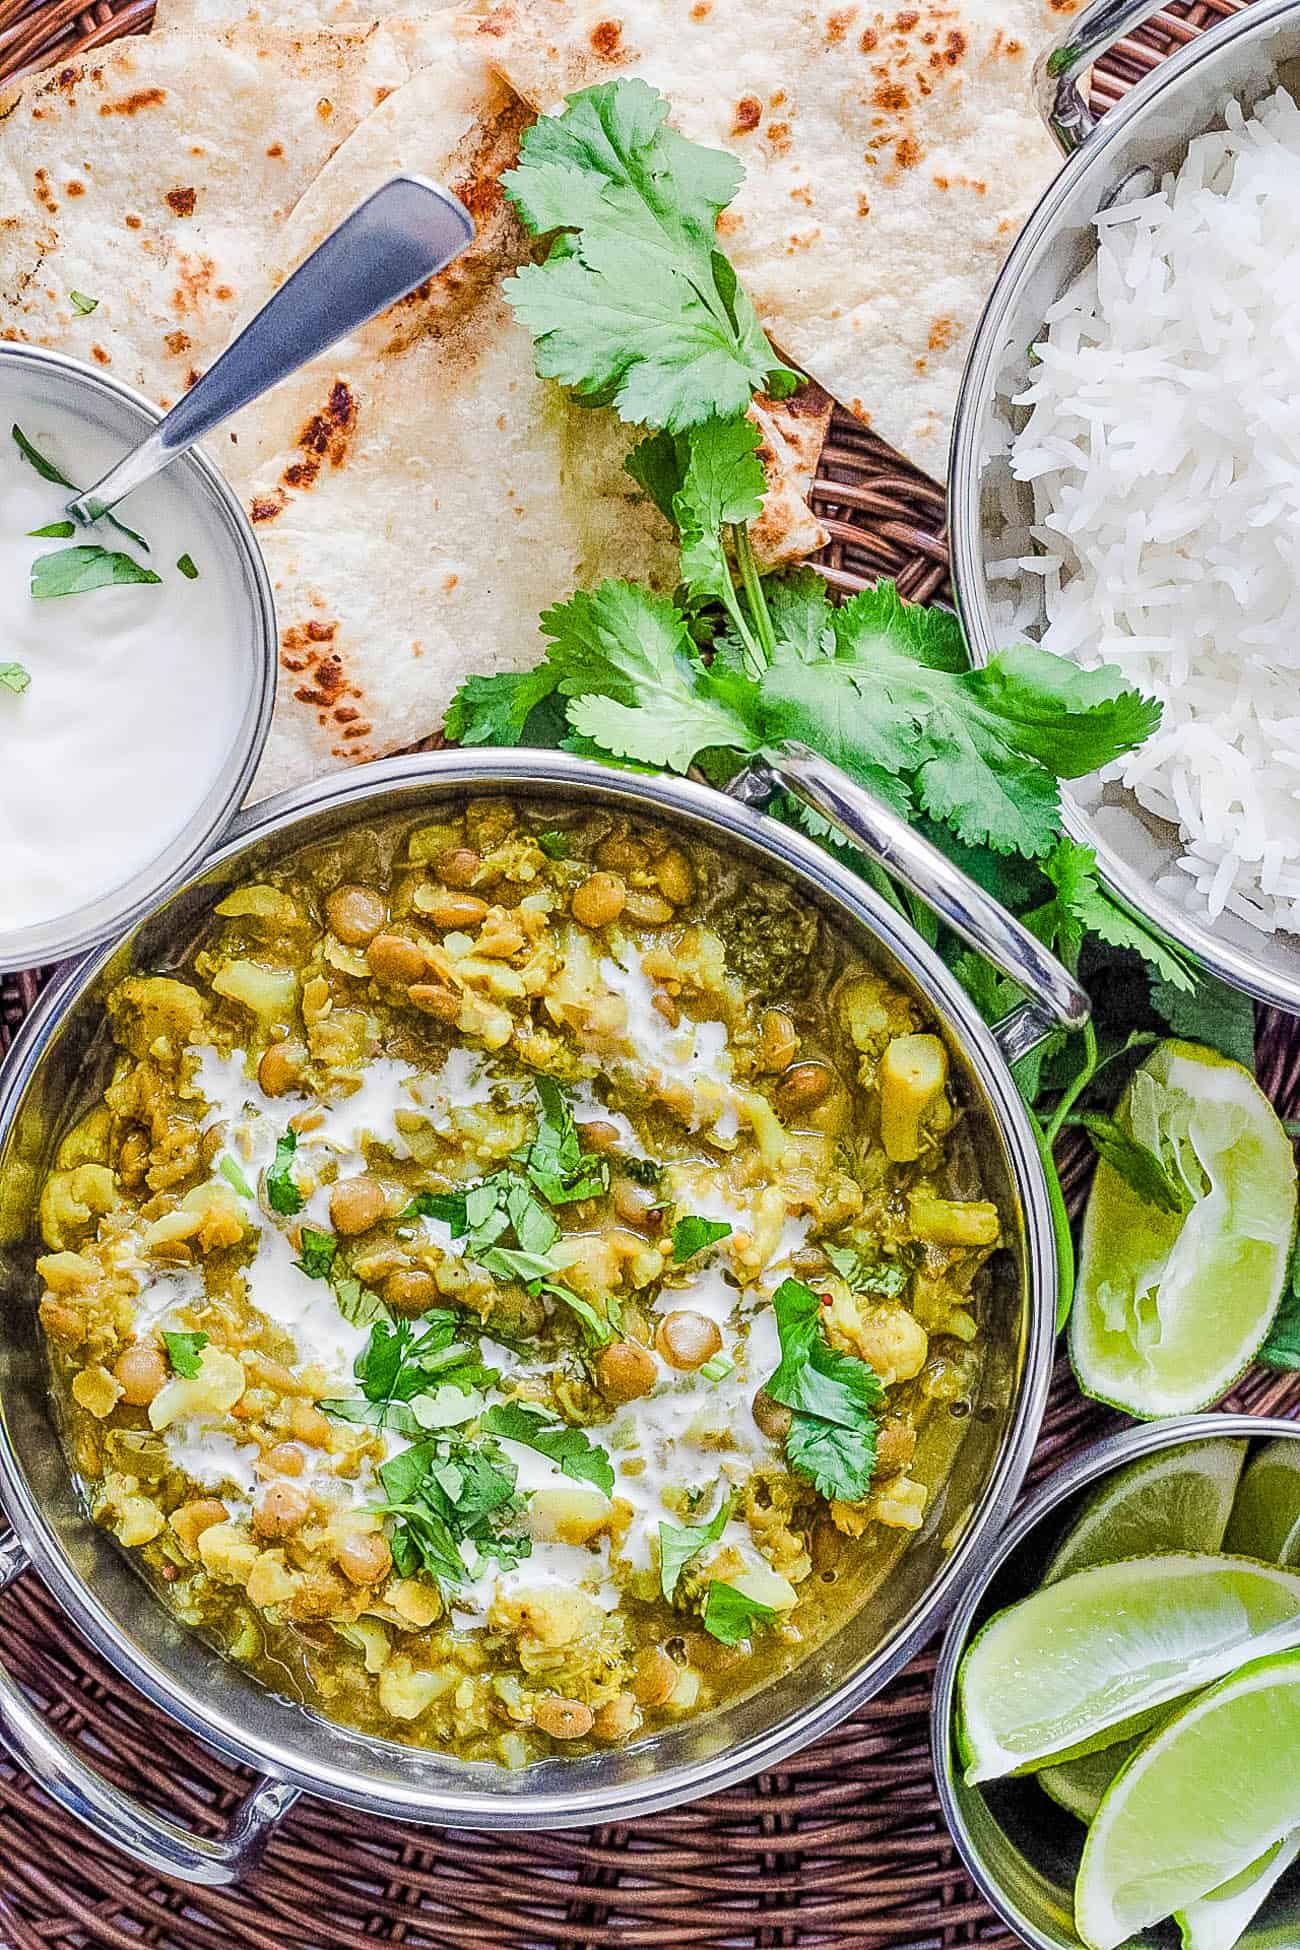 Lentil Cauilflower Curry served in a stainless steel pot with naan, cilantro and rice on the side